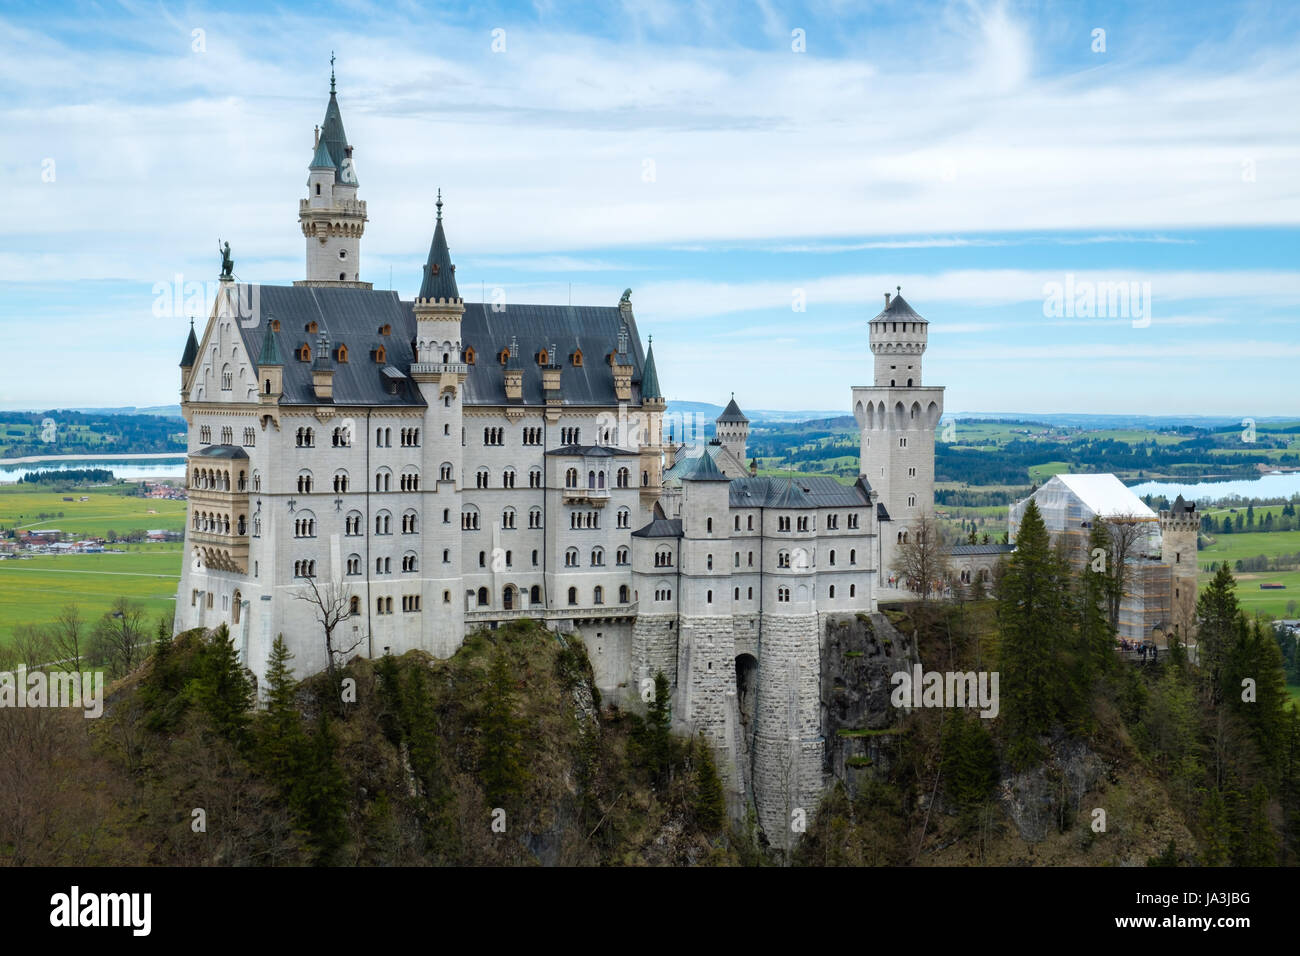 Neuschwanstein castle, view from Marienbrucke bridge, the famous viewpoint in Fussen, Germany - Stock Image